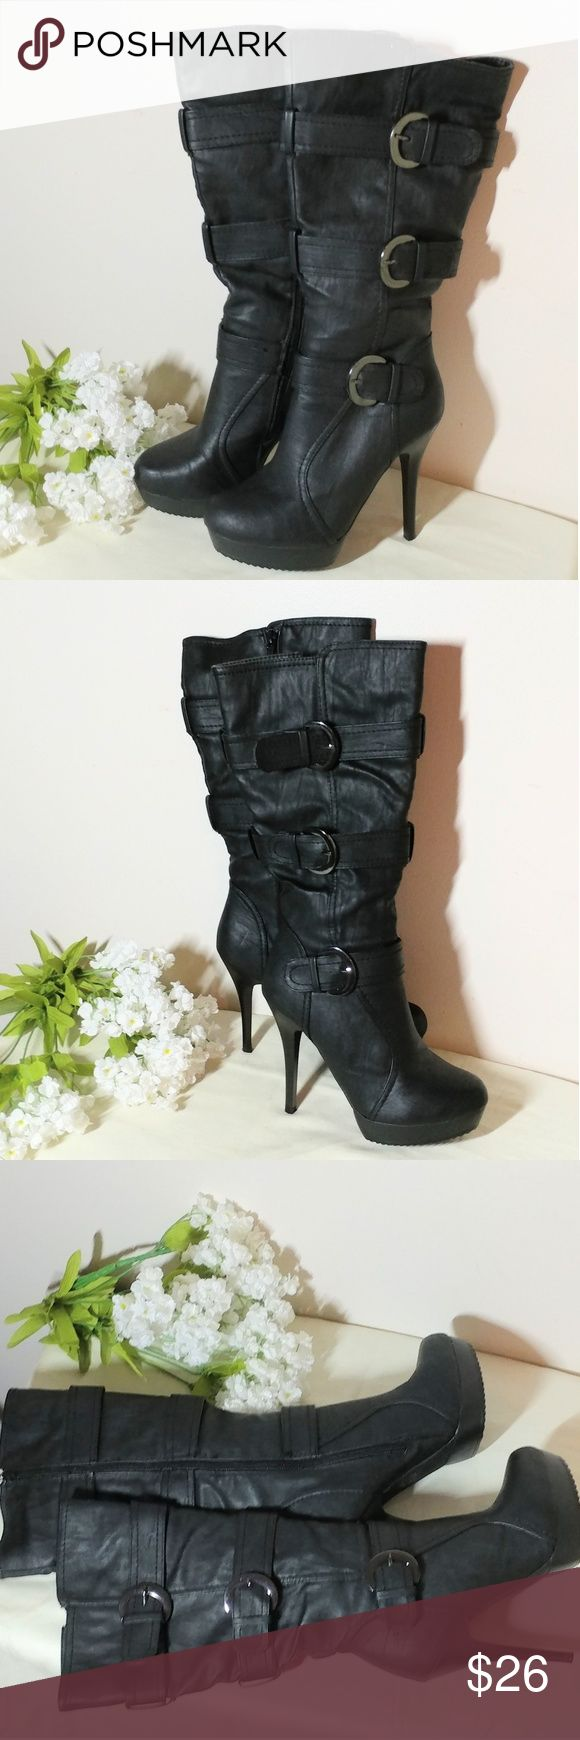 "Charlotte Russe Boots Charlotte Russe Boots - These Boots are in Excellent Condition with A Heel Size of 5"" and Boot Height of 10 Inches B#8 Charlotte Russe Shoes Heeled Boots"